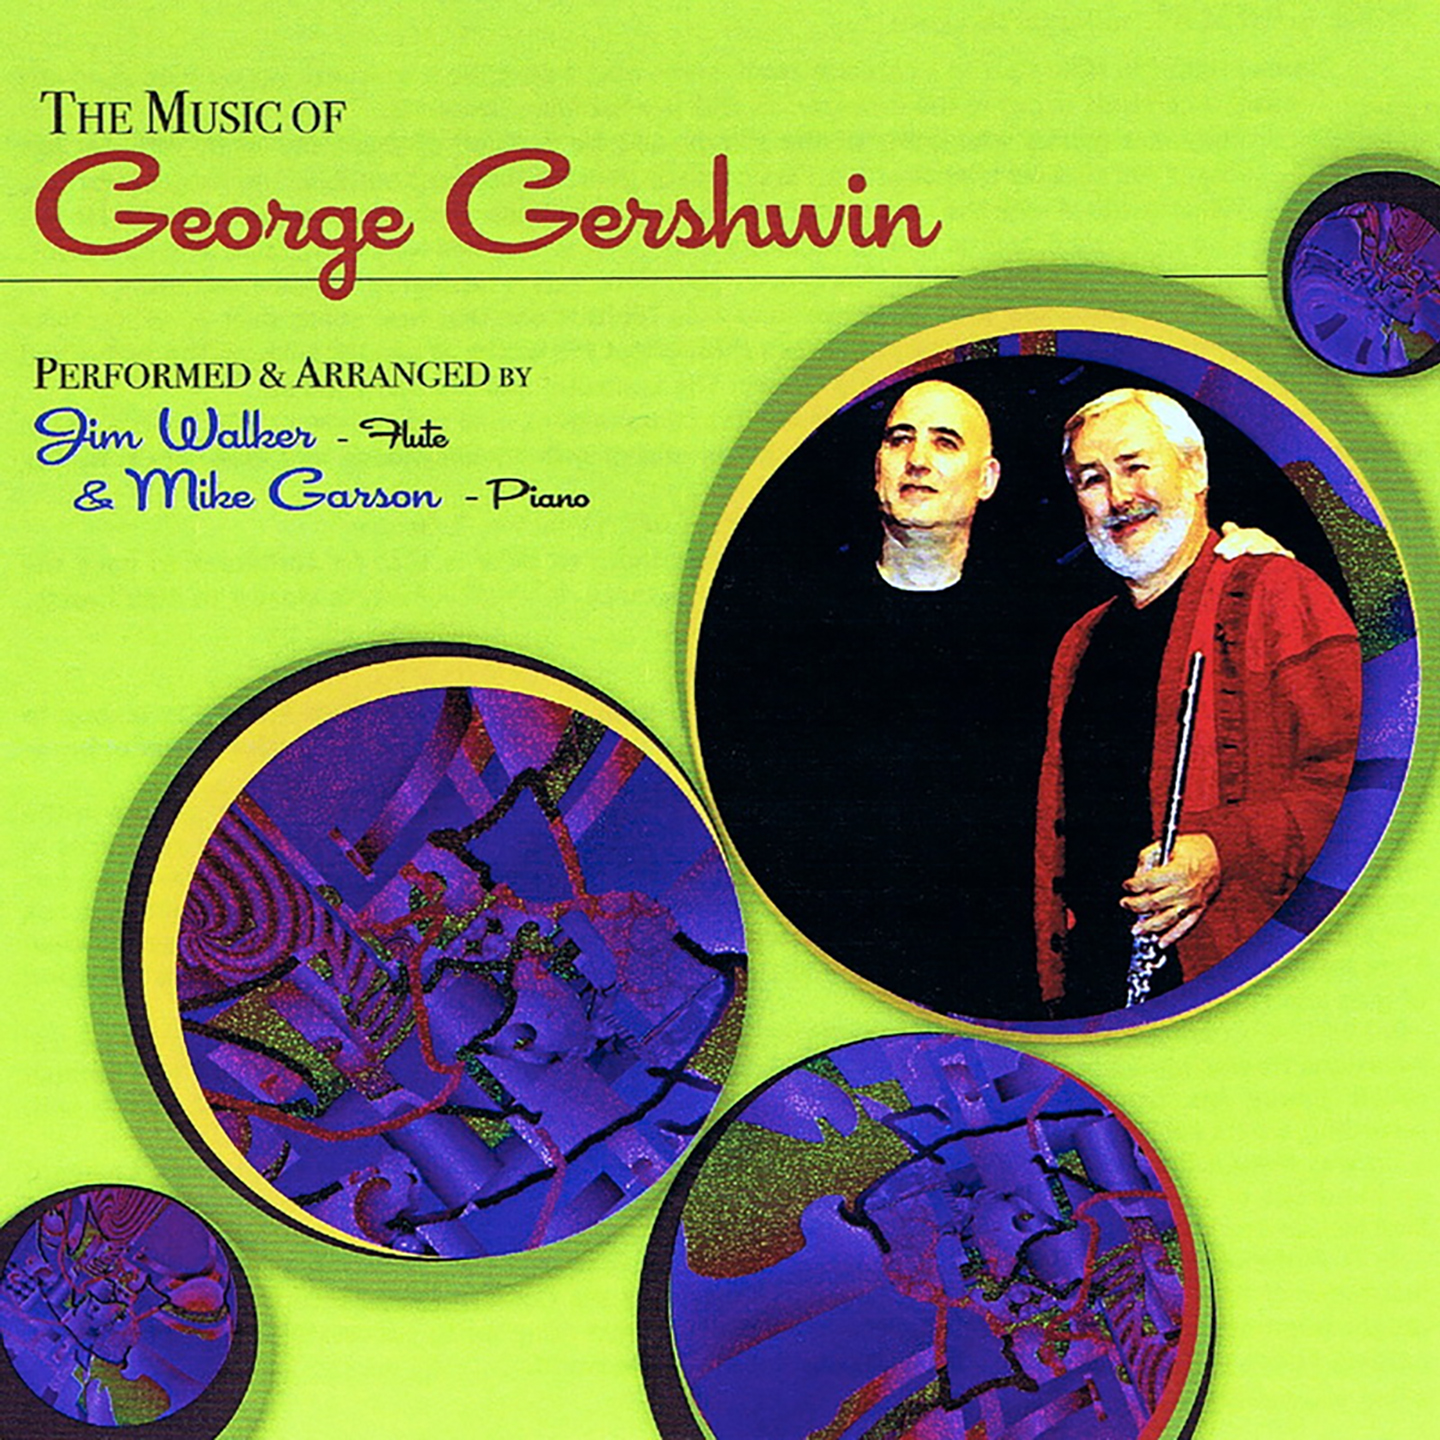 The Music of George Gershwin album cover